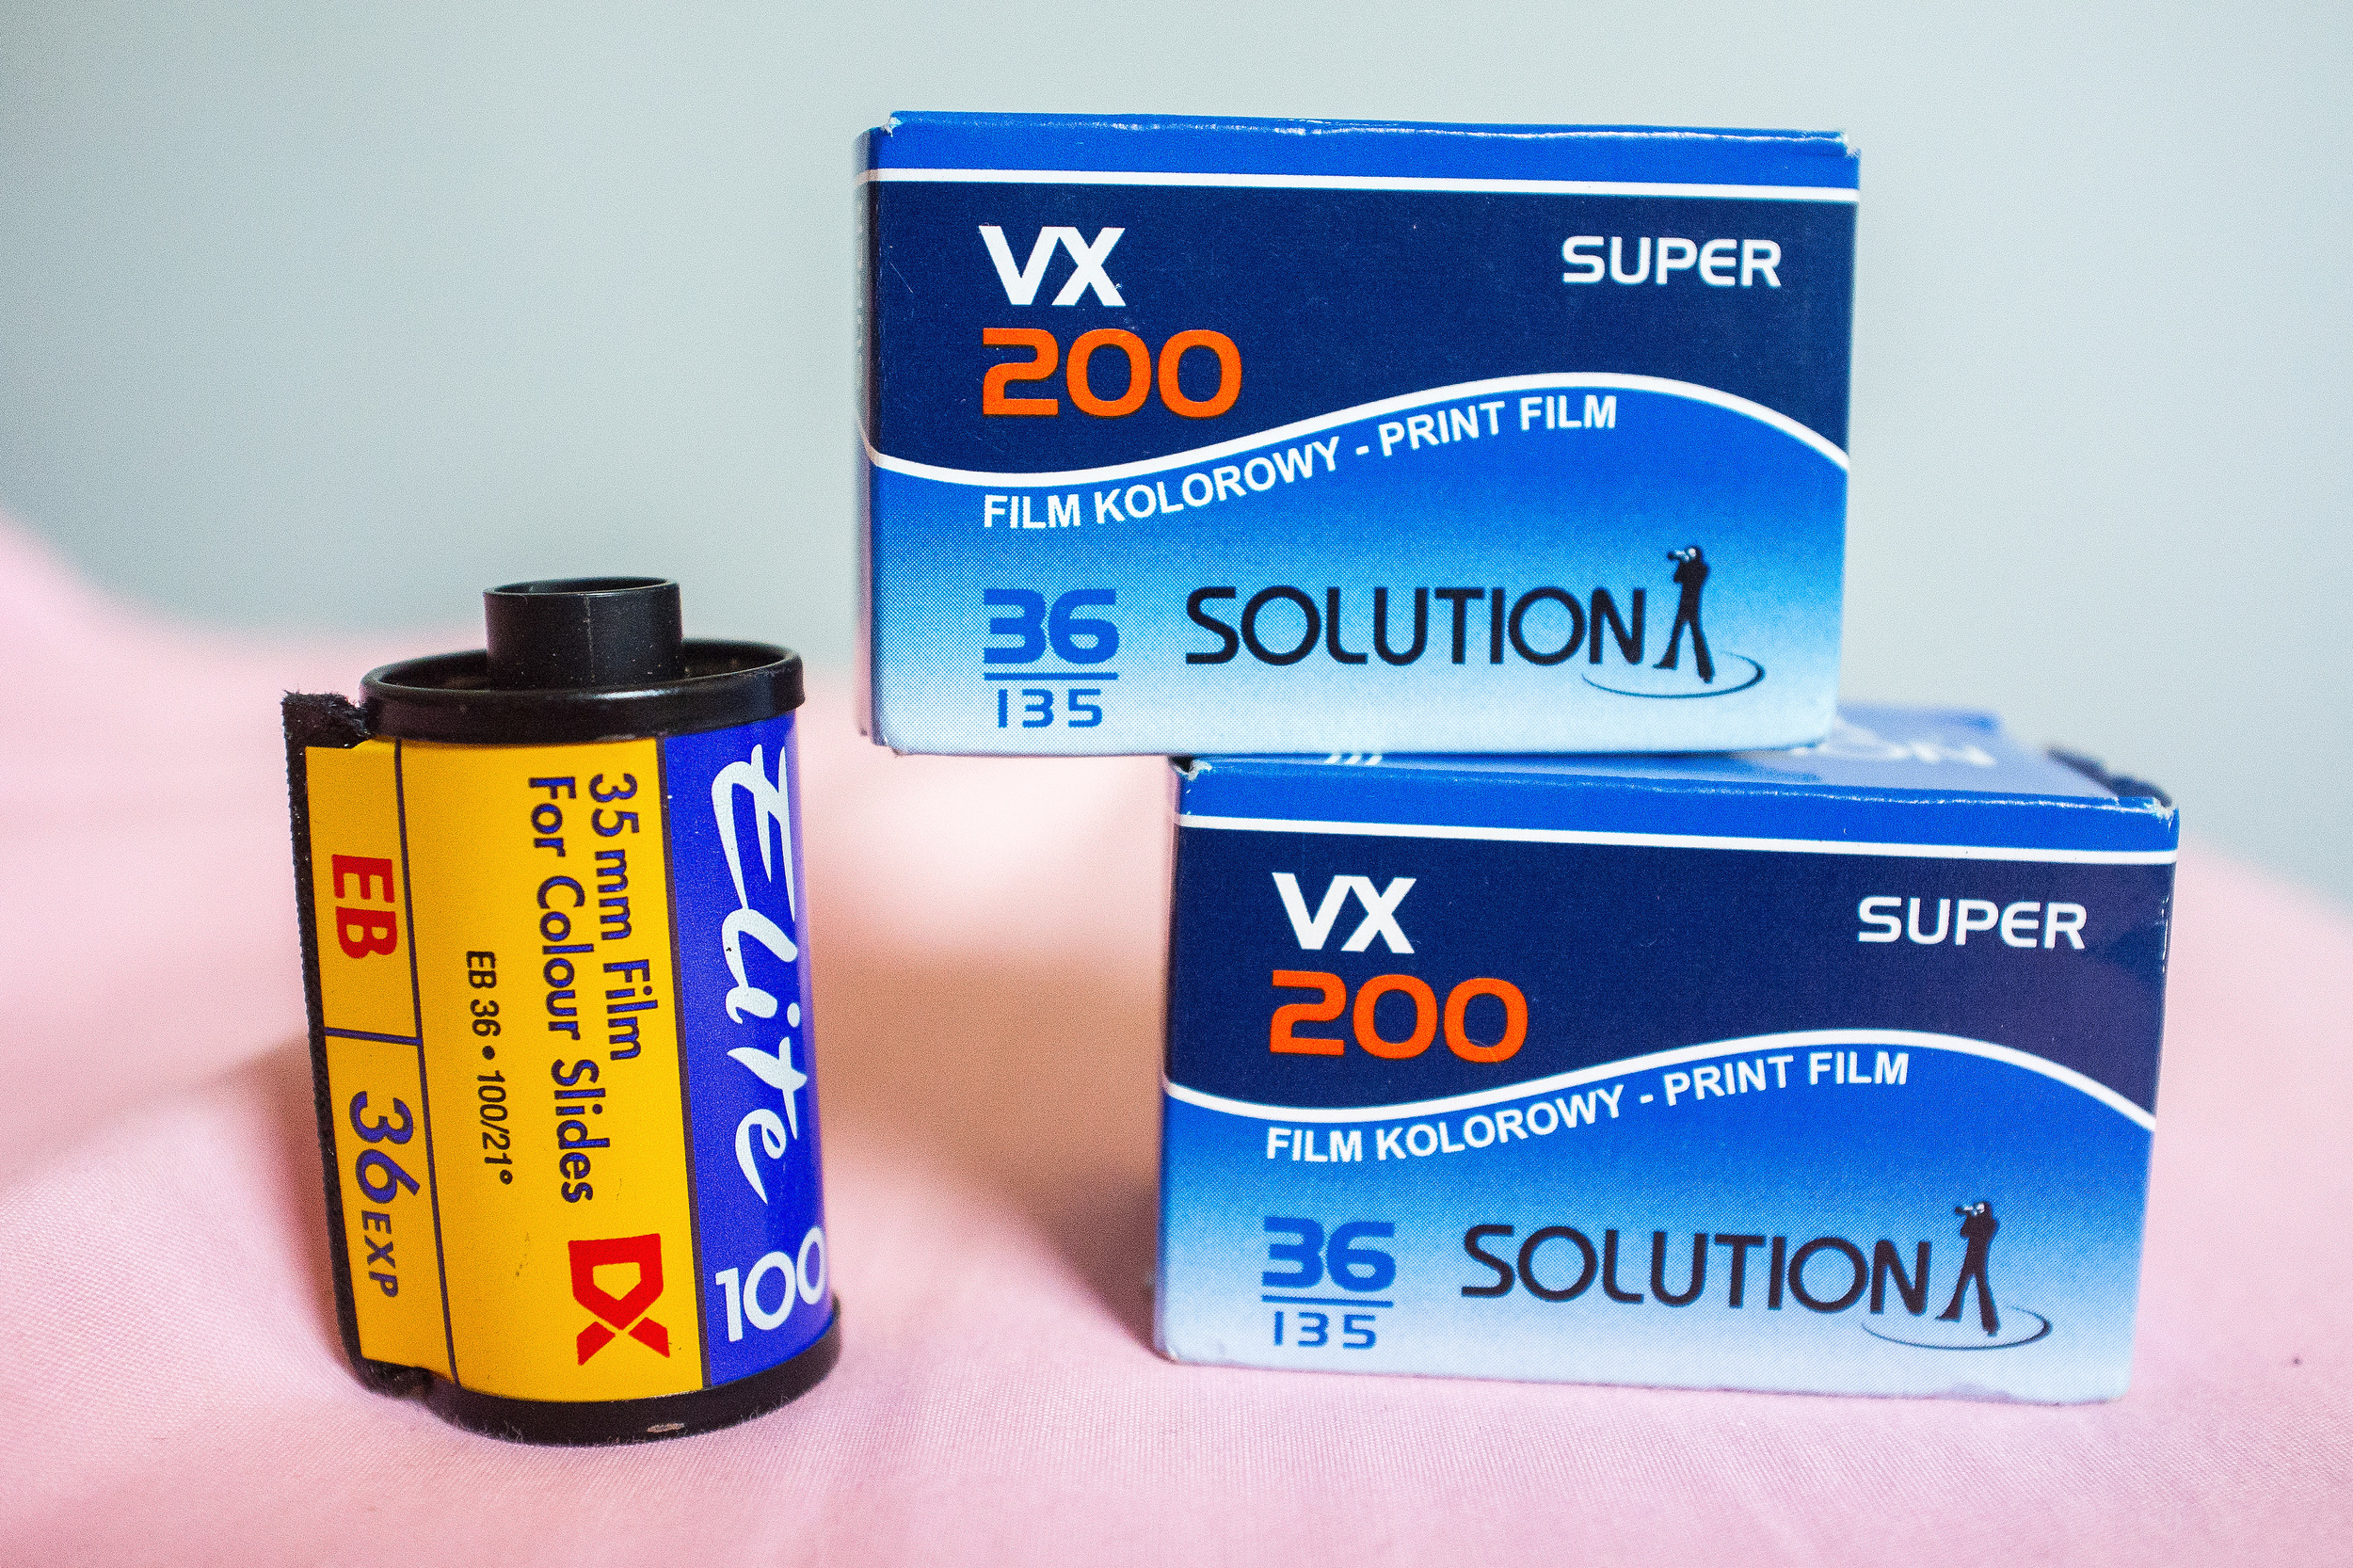 One of the Solution VX200 rolls is currently in my camera.